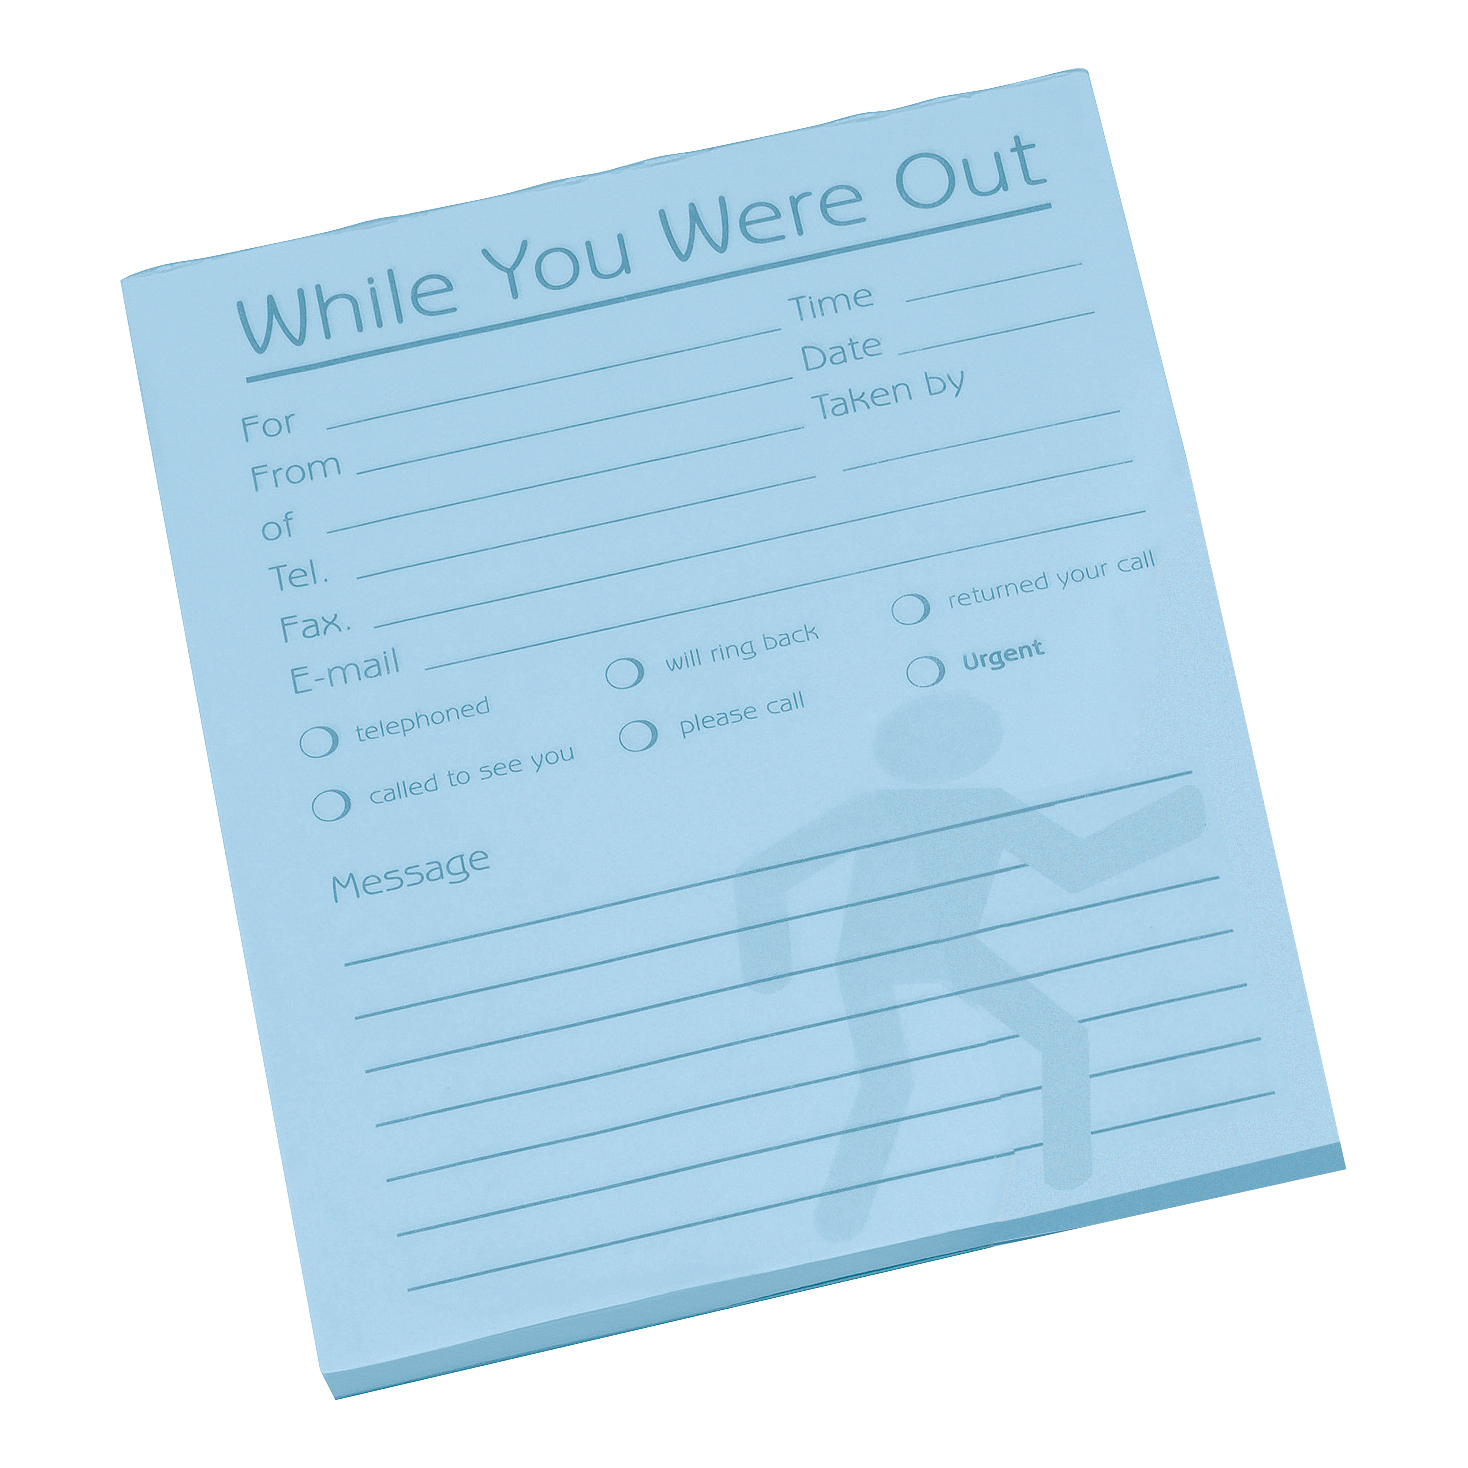 Challenge While You Were Out Messgae Pad 80 Sheets 127x102mm Pale Blue Paper Pack 10